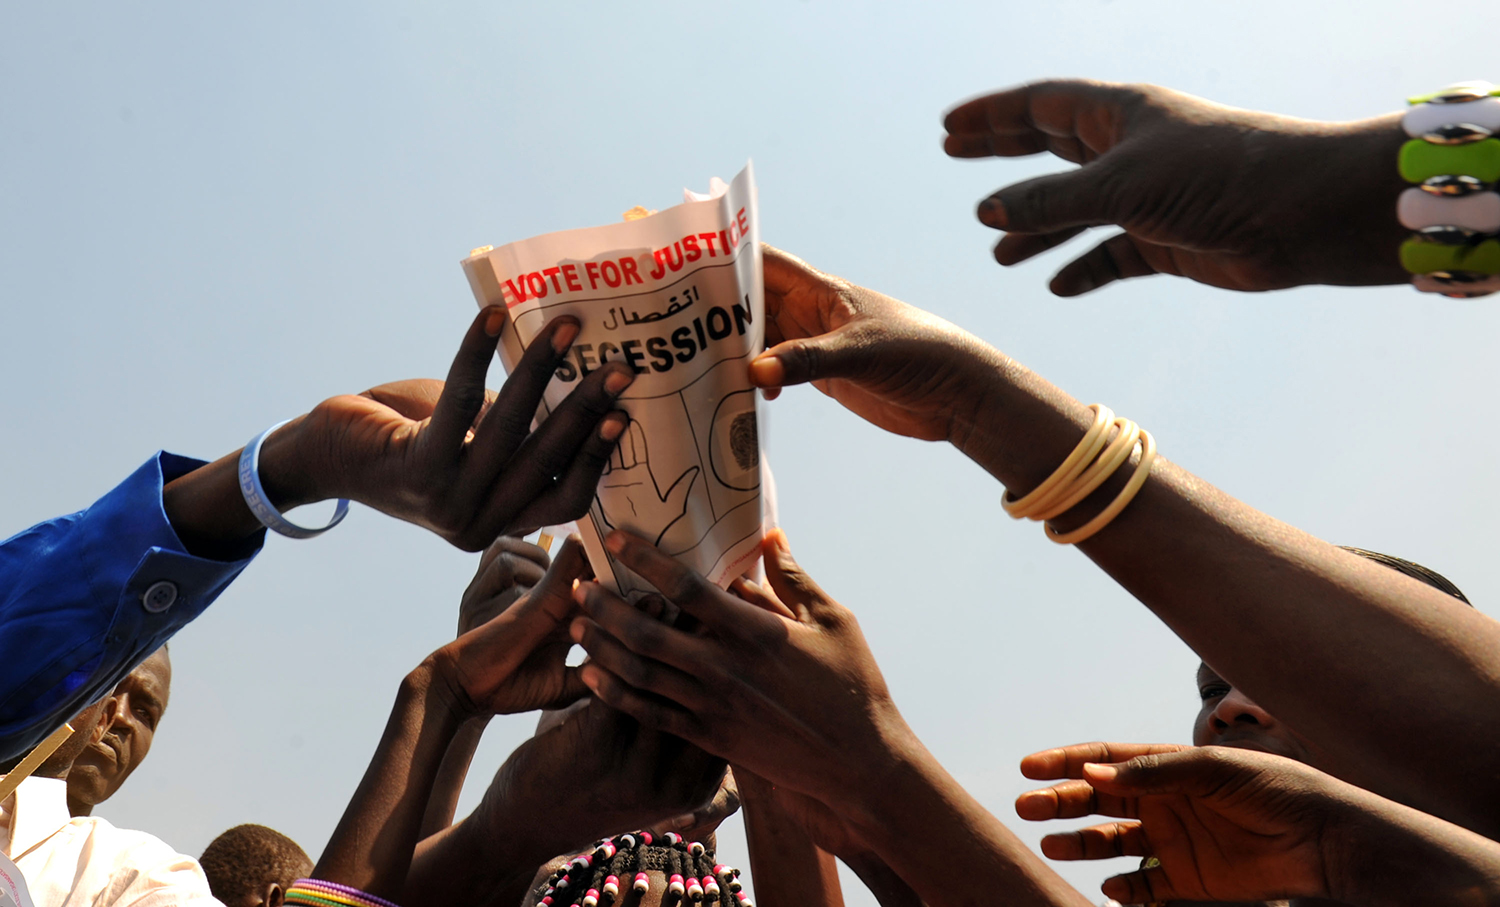 Southern Sudanese celebrate the coming independence referendum at a separation rally held at the John Garang mausoleum in Juba on Jan. 7, 2011.